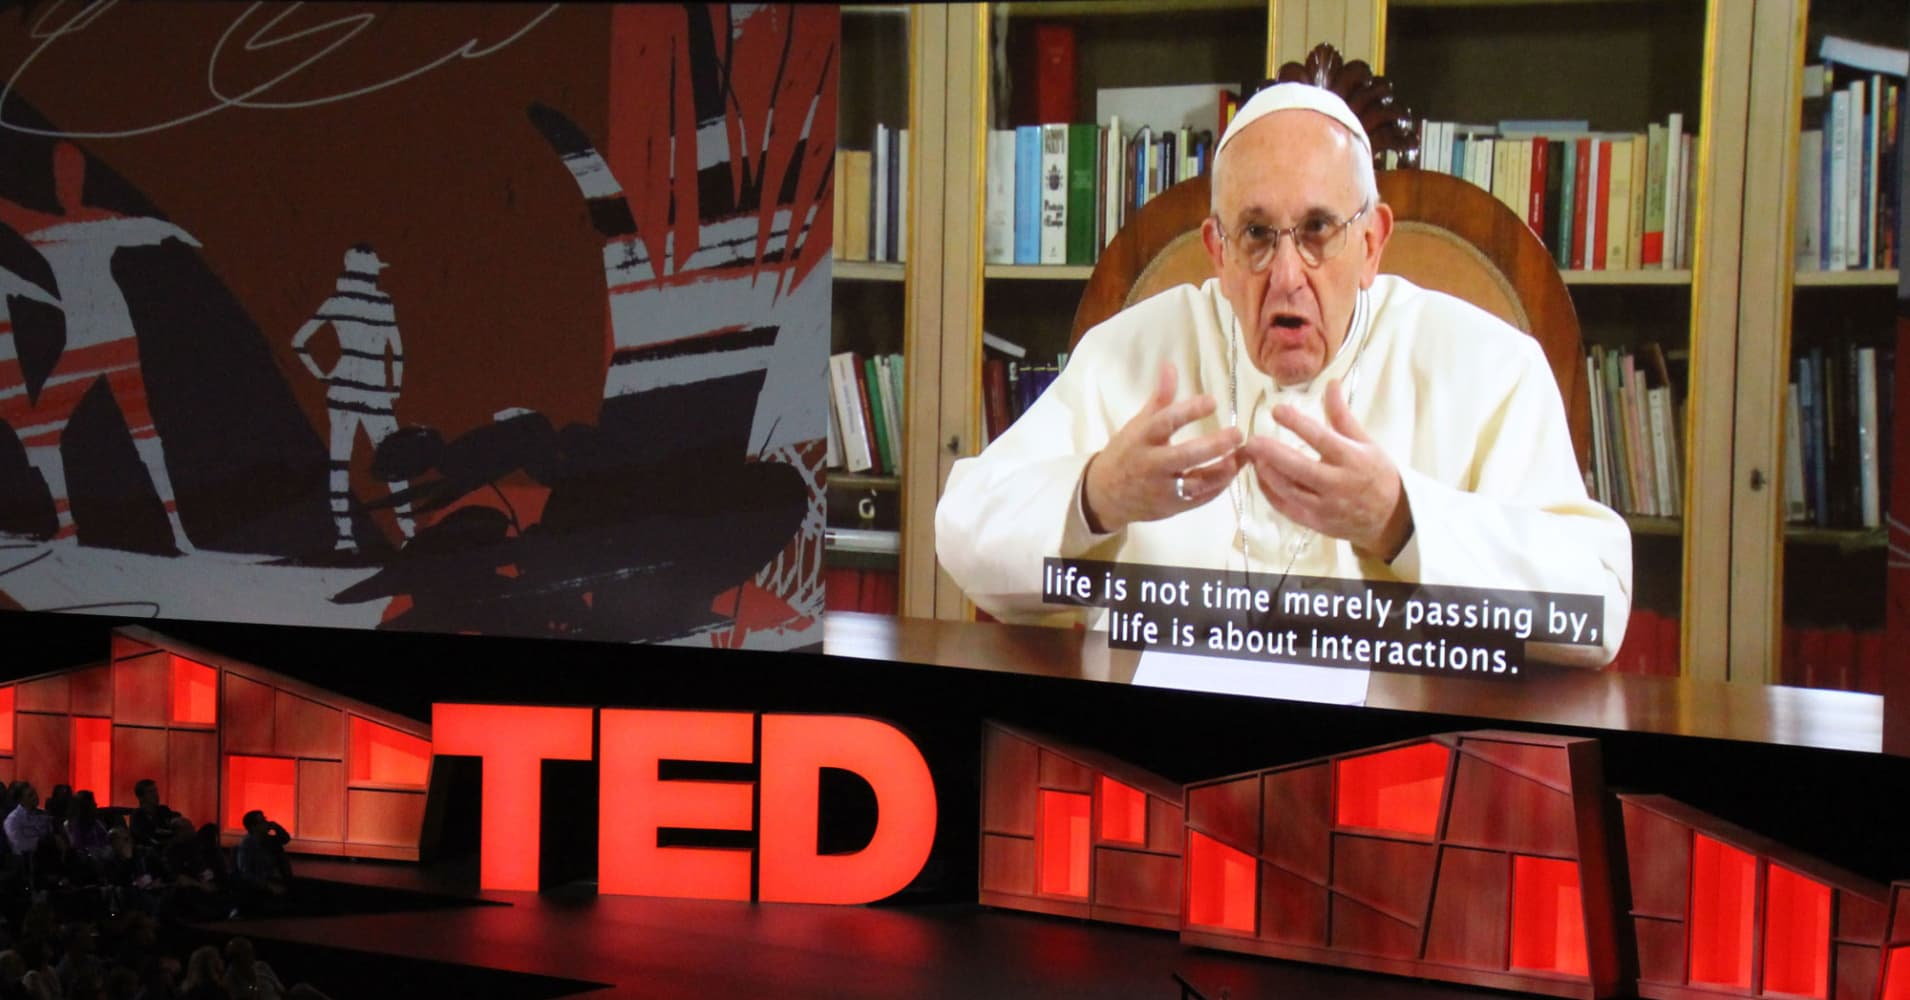 Pope Francis warns in TED talk: 'Power can ruin you'